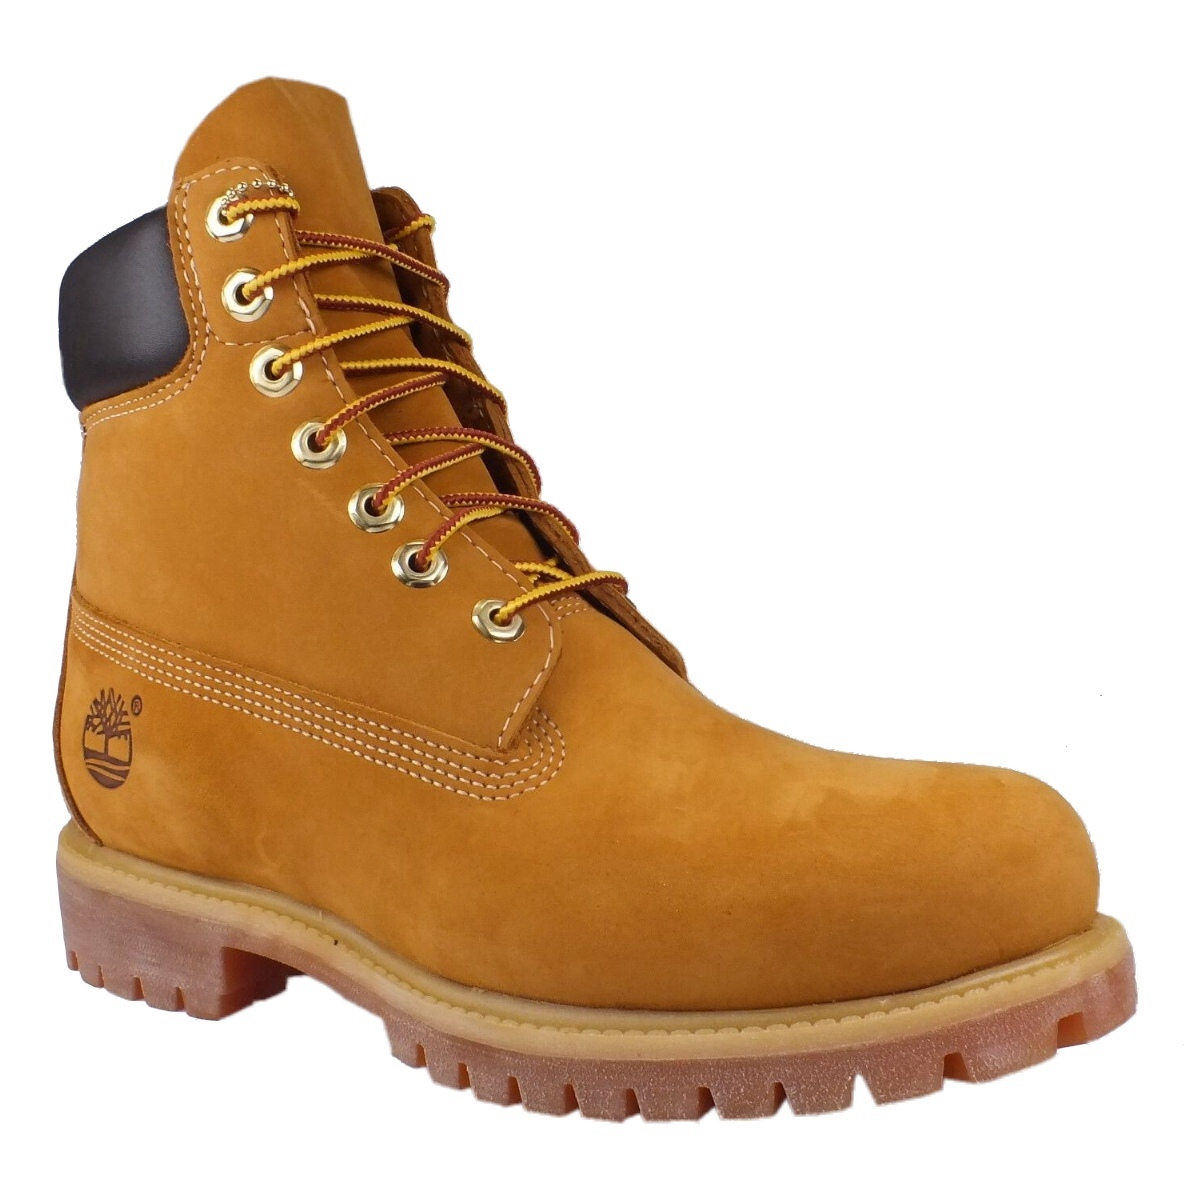 timberland 6 inch premium waterproof boot men 39 s shoes boots winterboots ebay